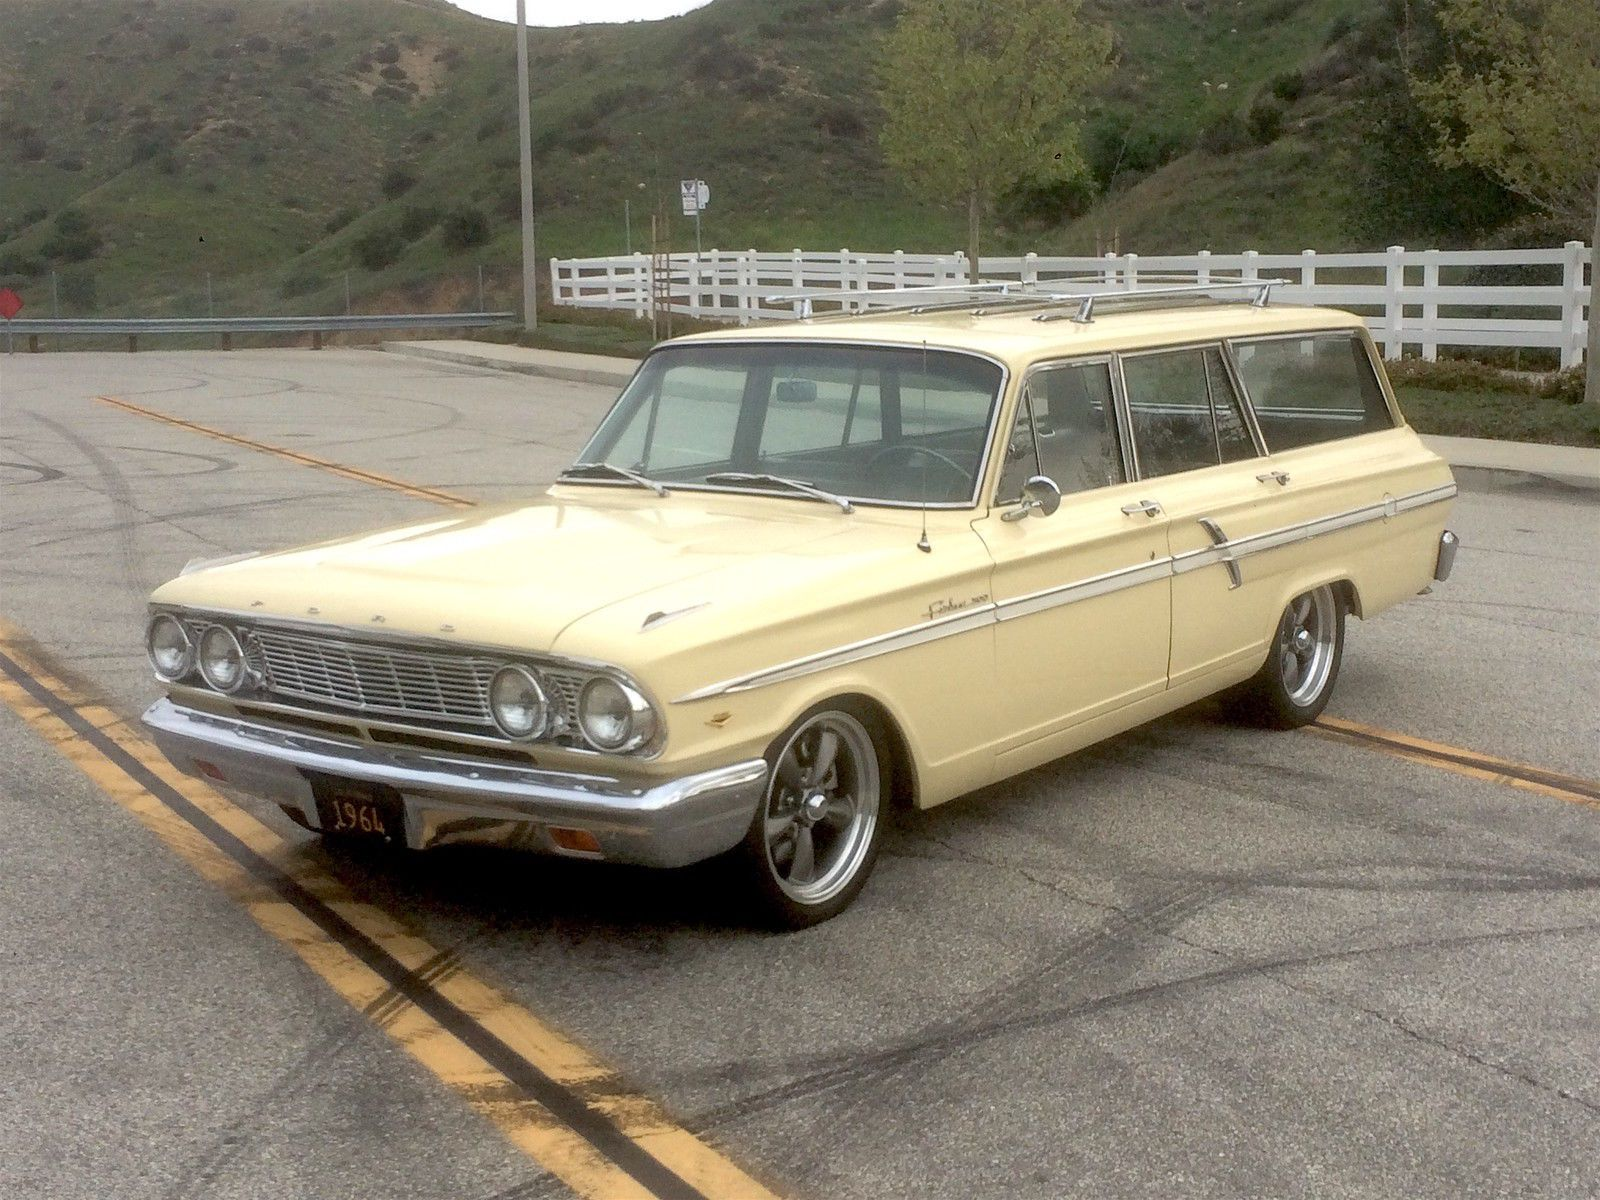 1964 Ford Fairlane Wagon With Images Ford Fairlane Fairlane